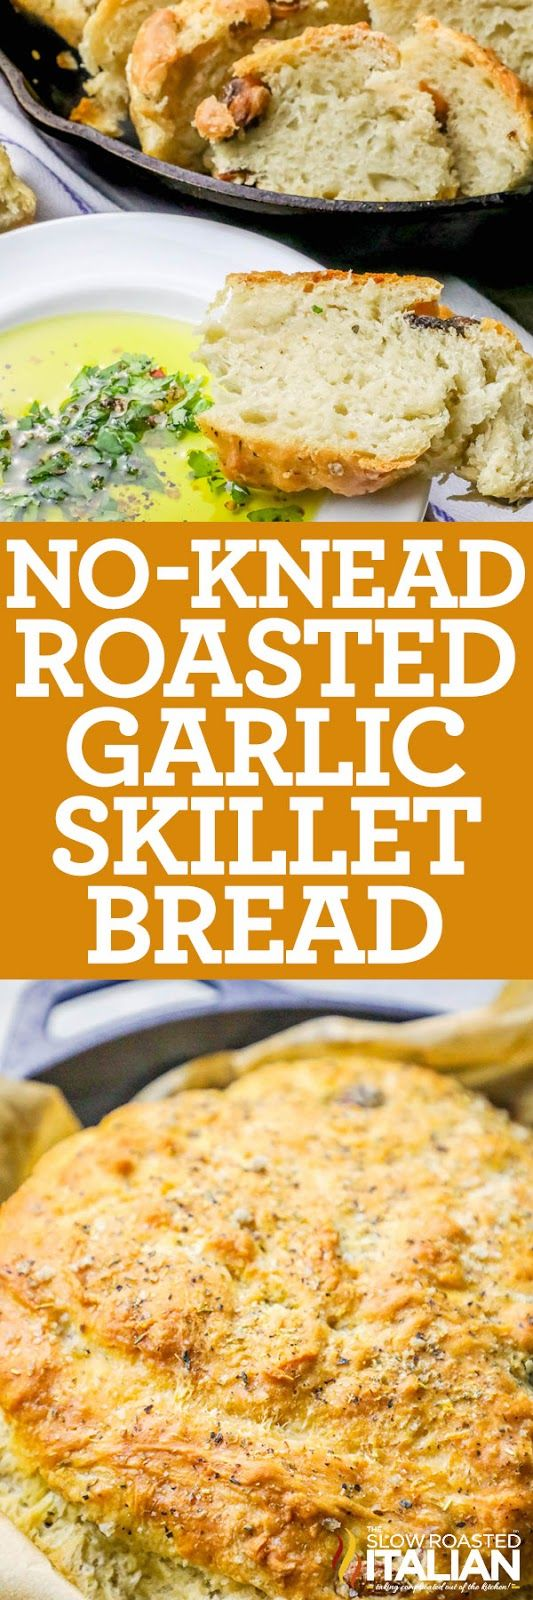 Easy Roasted Garlic No-Knead Skillet Bread is artisan style, bakery fresh bread at home with no special equipment or fussy kneading! Just mix, let rise, and bake for the most delicious bread you've ever made! Perfect for Thanksgiving!